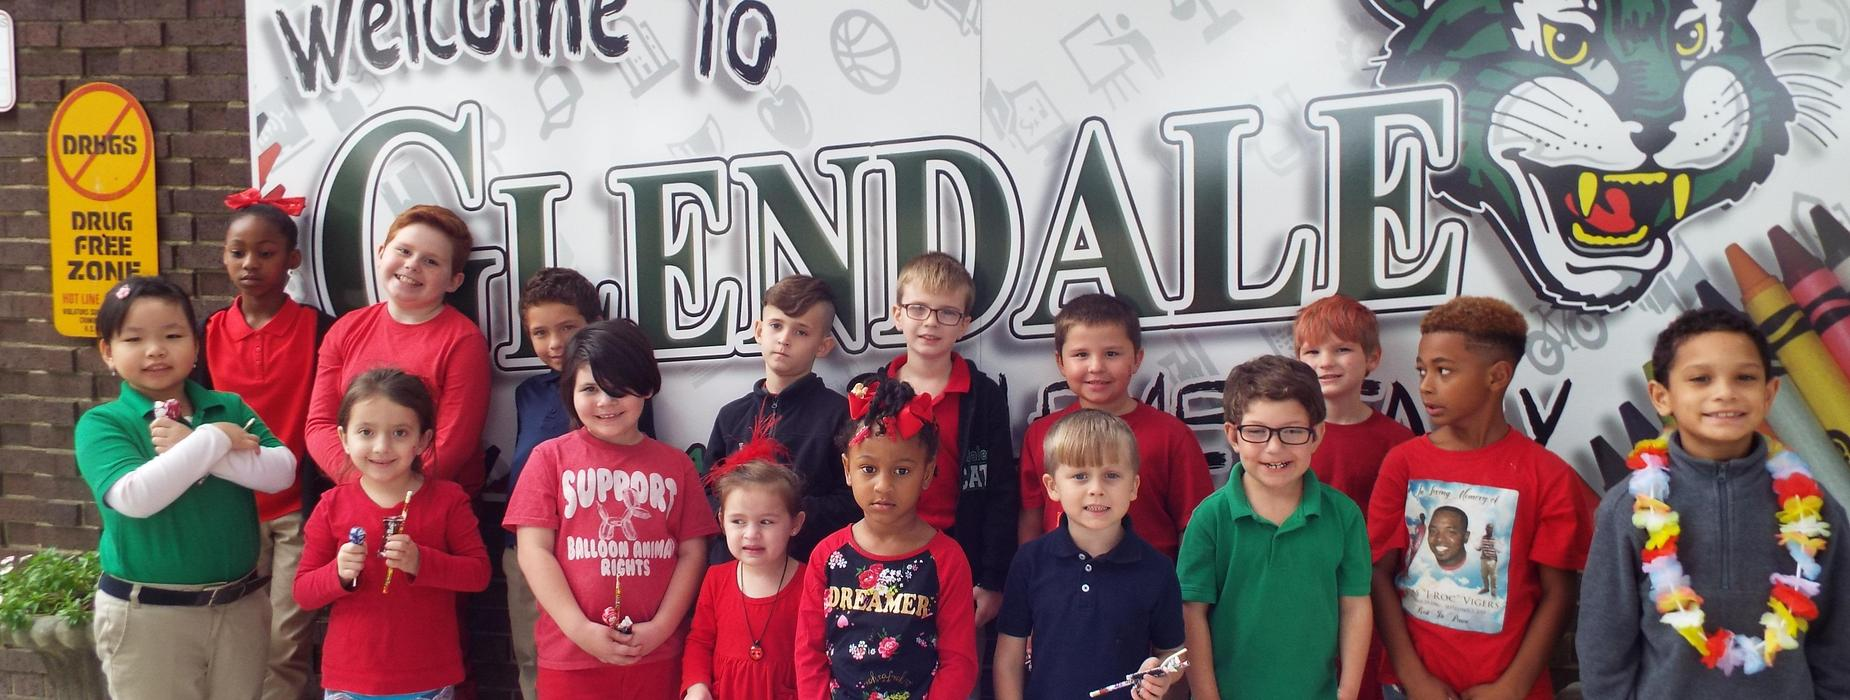 Glendale Students of the Week for October 22 - 26, 2018.